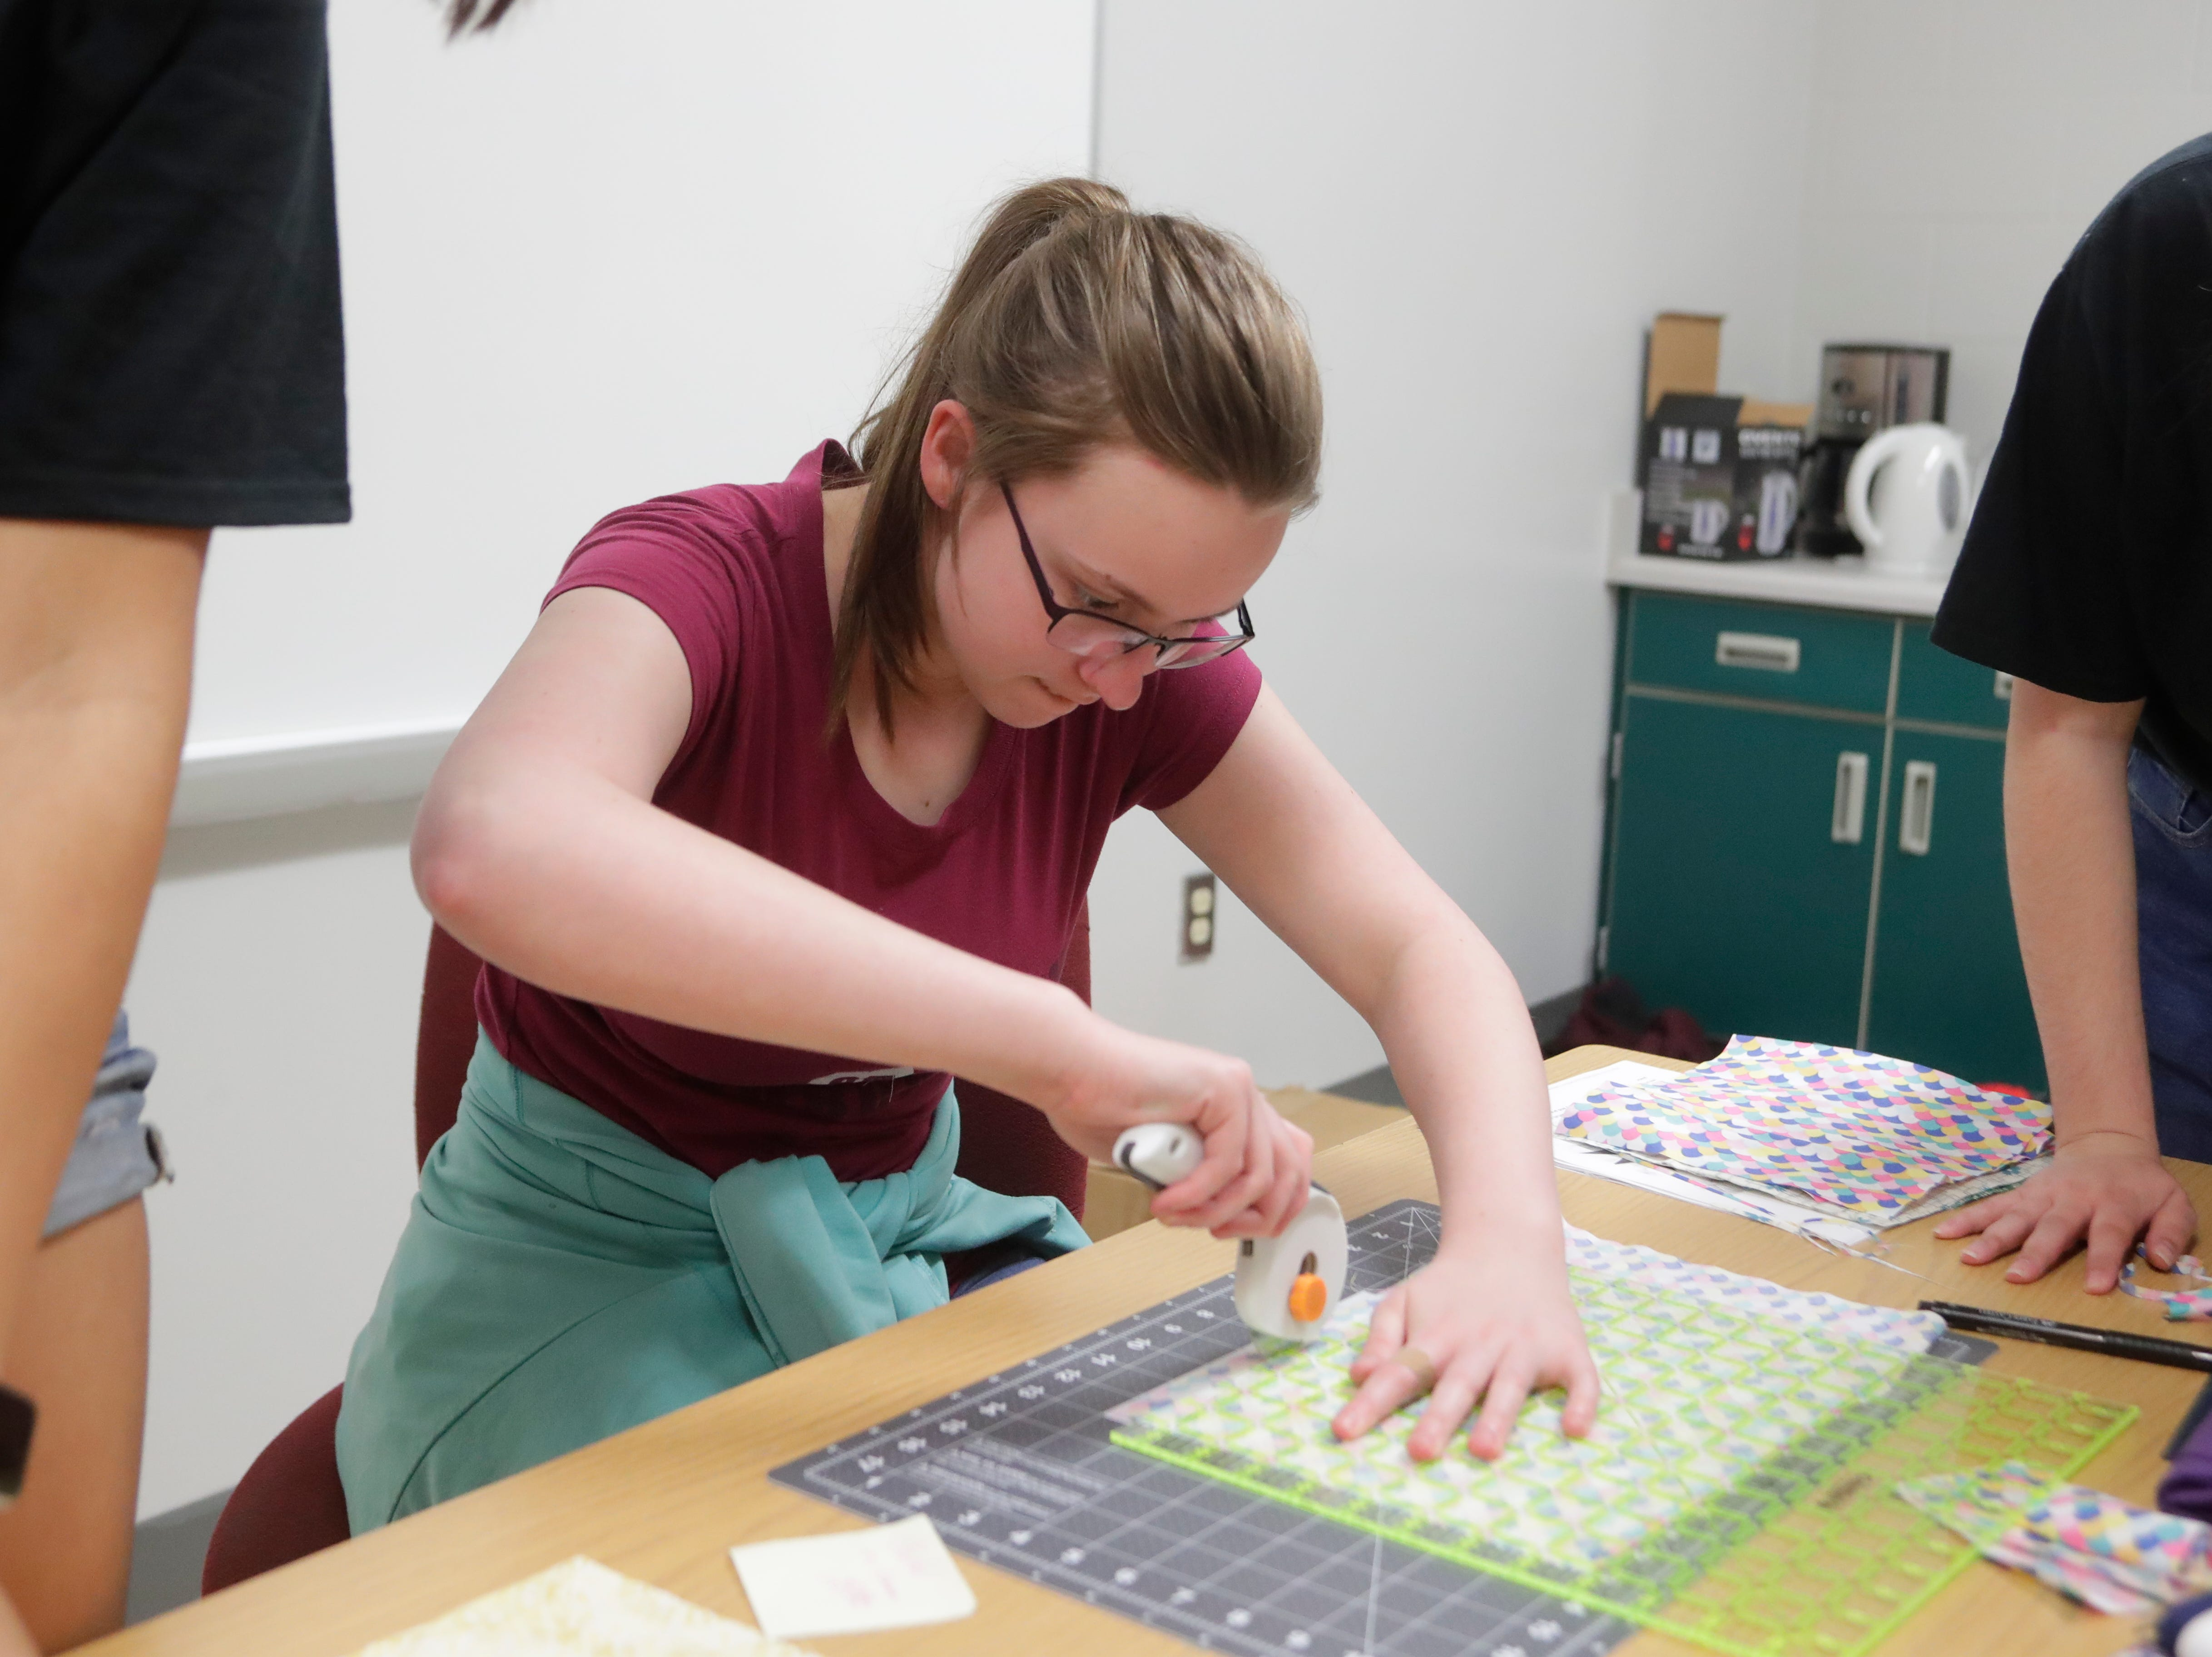 Autumn Kennedy, a sophomore at Chiles High School and member of the Chiles Sewing Club, cuts squares out of fabric to be sewn into quilts people at the refuge home, Thursday Feb. 21, 2019.